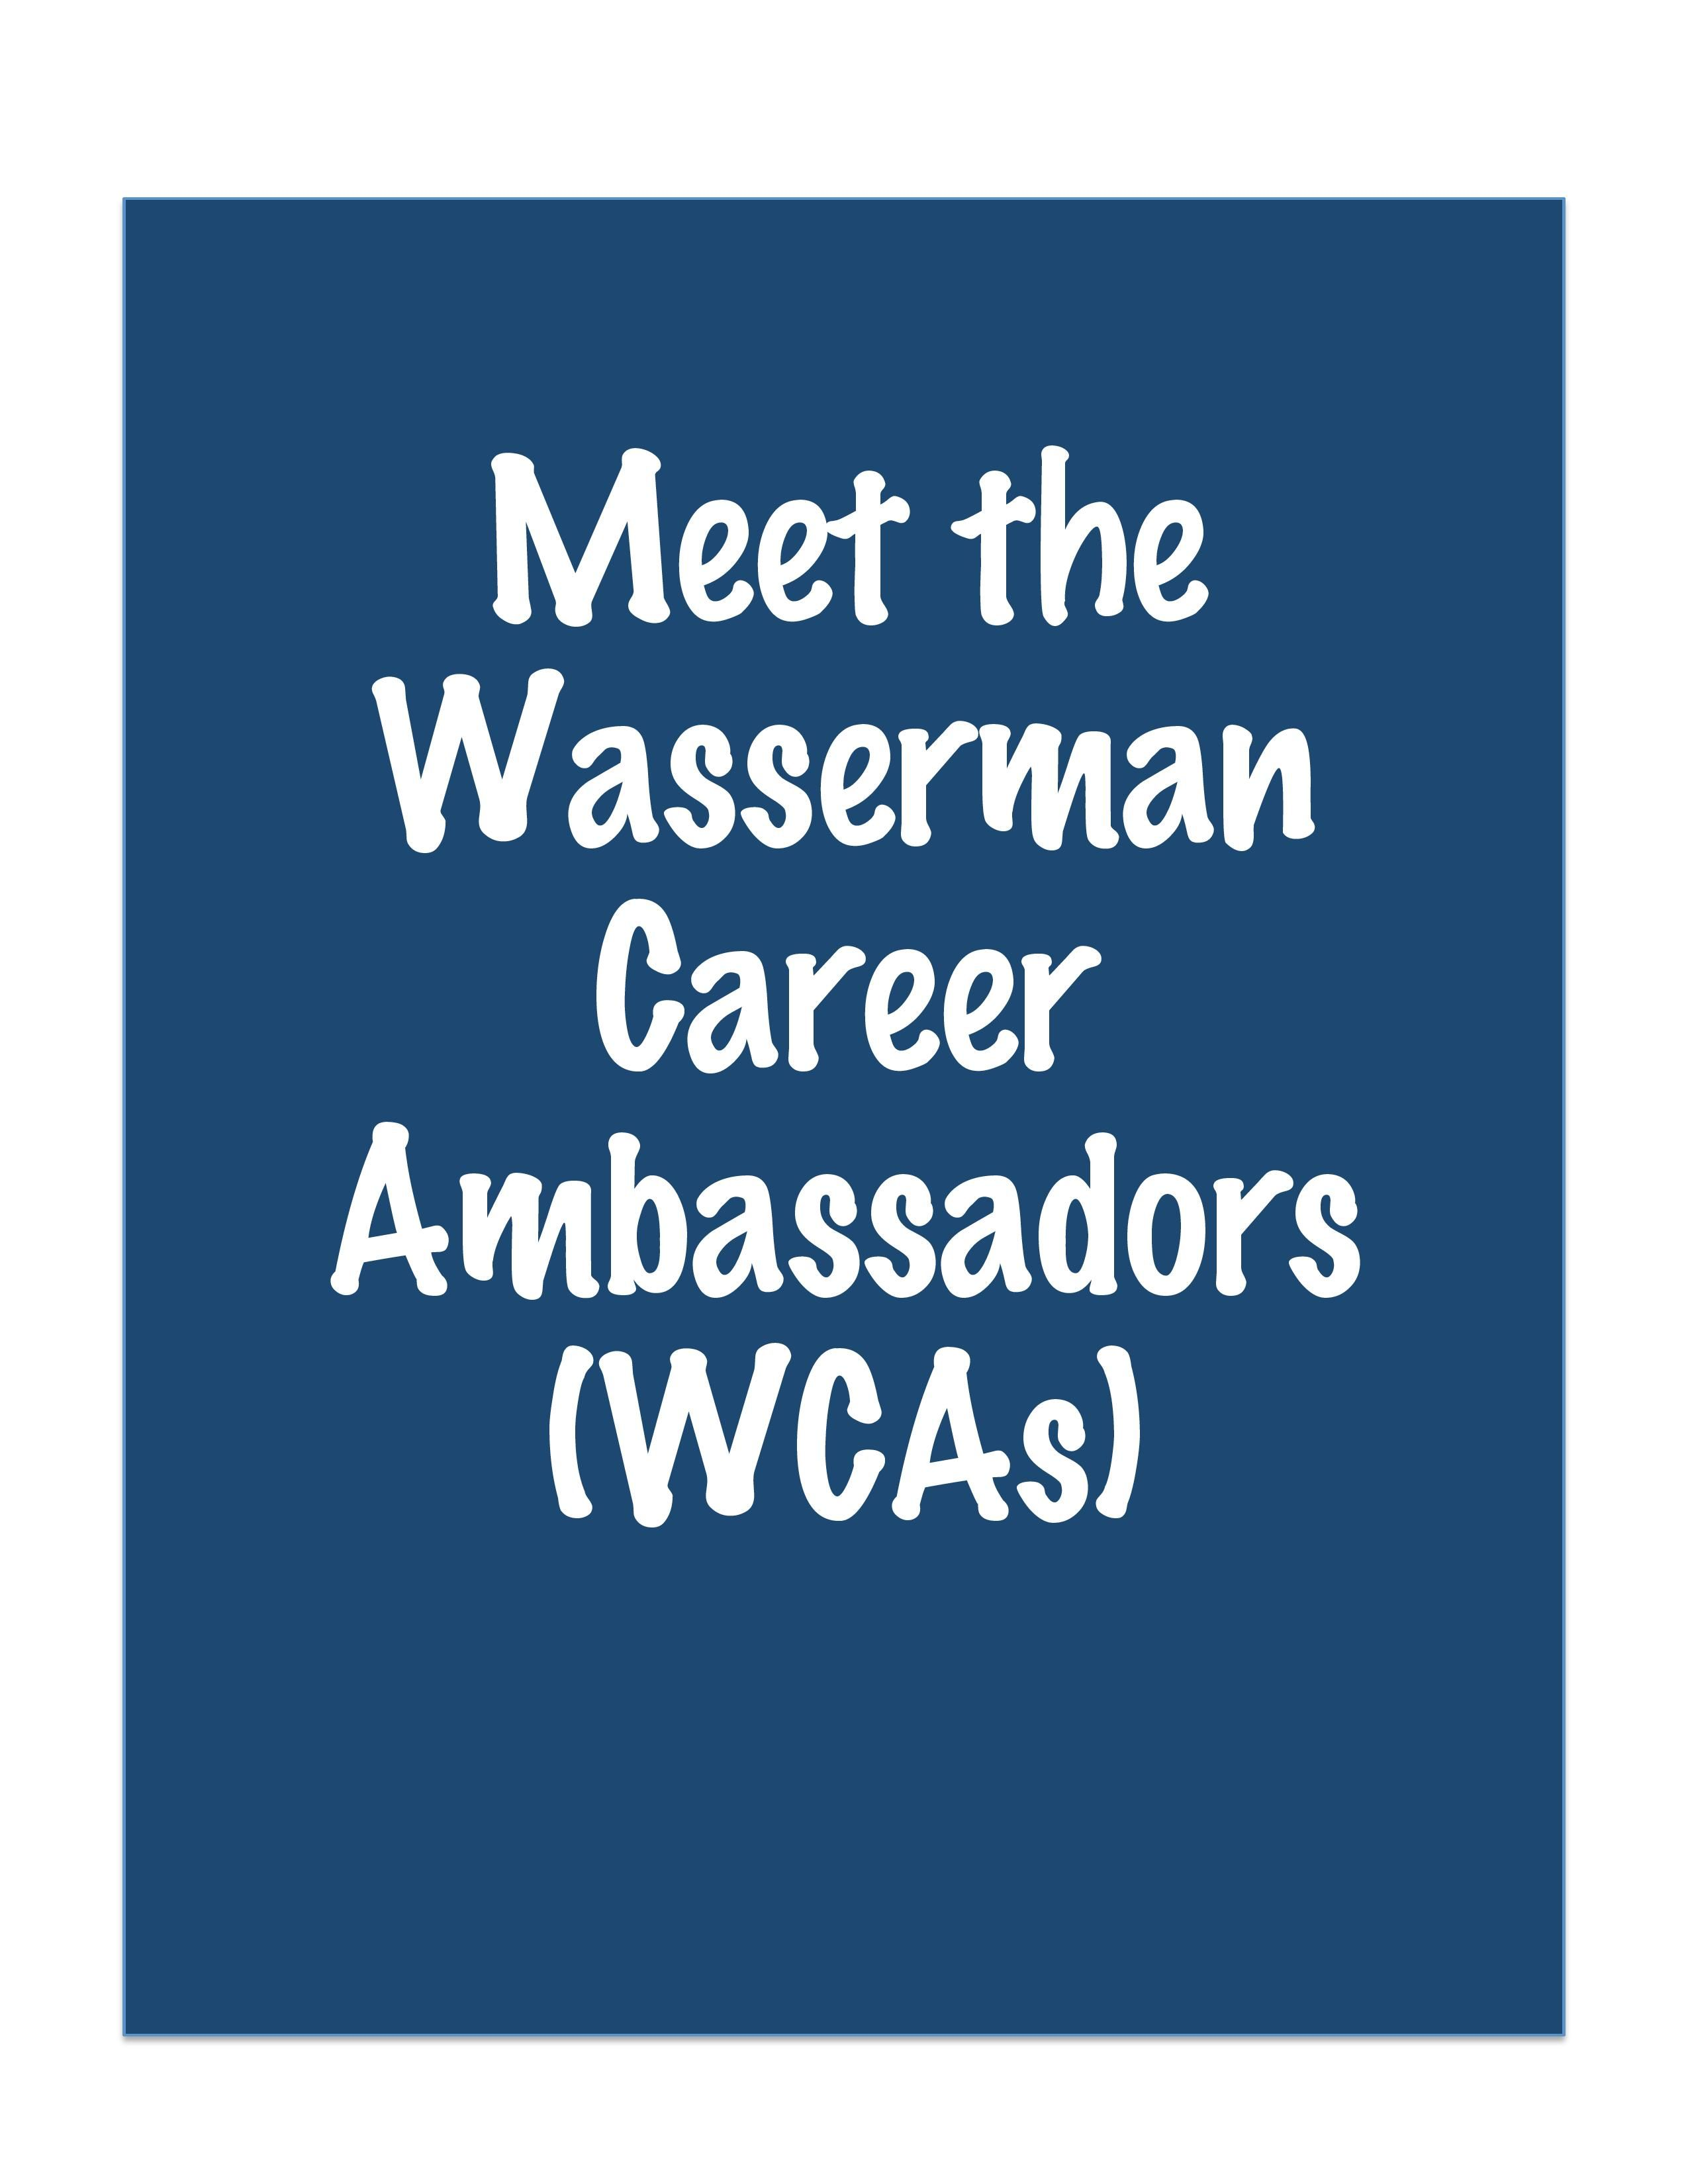 nyu wasserman center for career development nyuwasserman on meet the career ambassadors career ambassadors are nyu wasserman s undergraduate peer educators on campus who